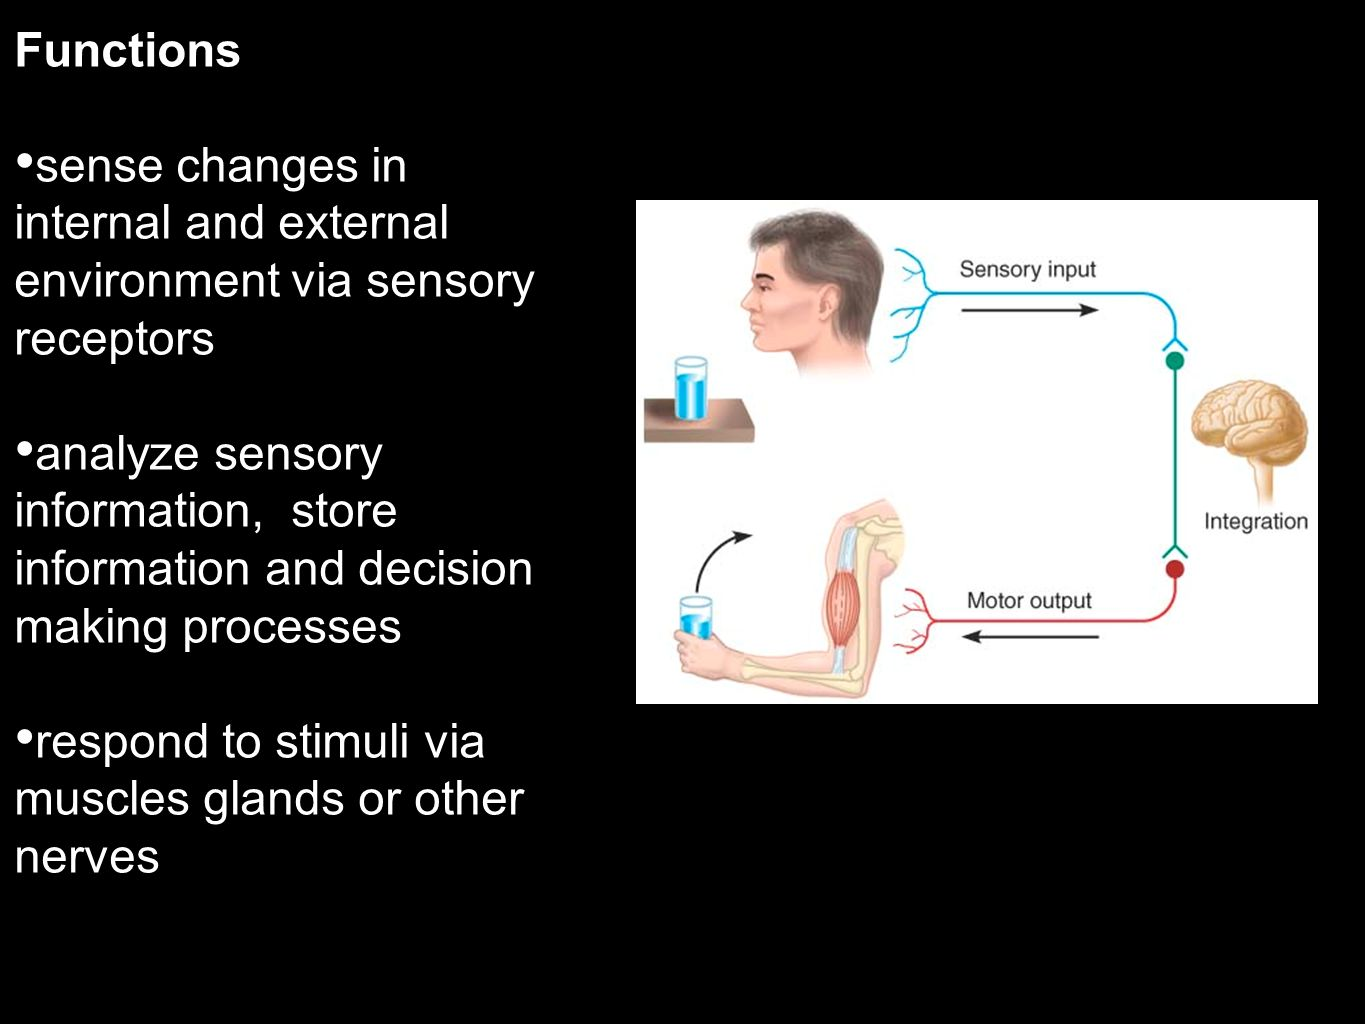 Functions sense changes in internal and external environment via sensory receptors analyze sensory information, store information and decision making